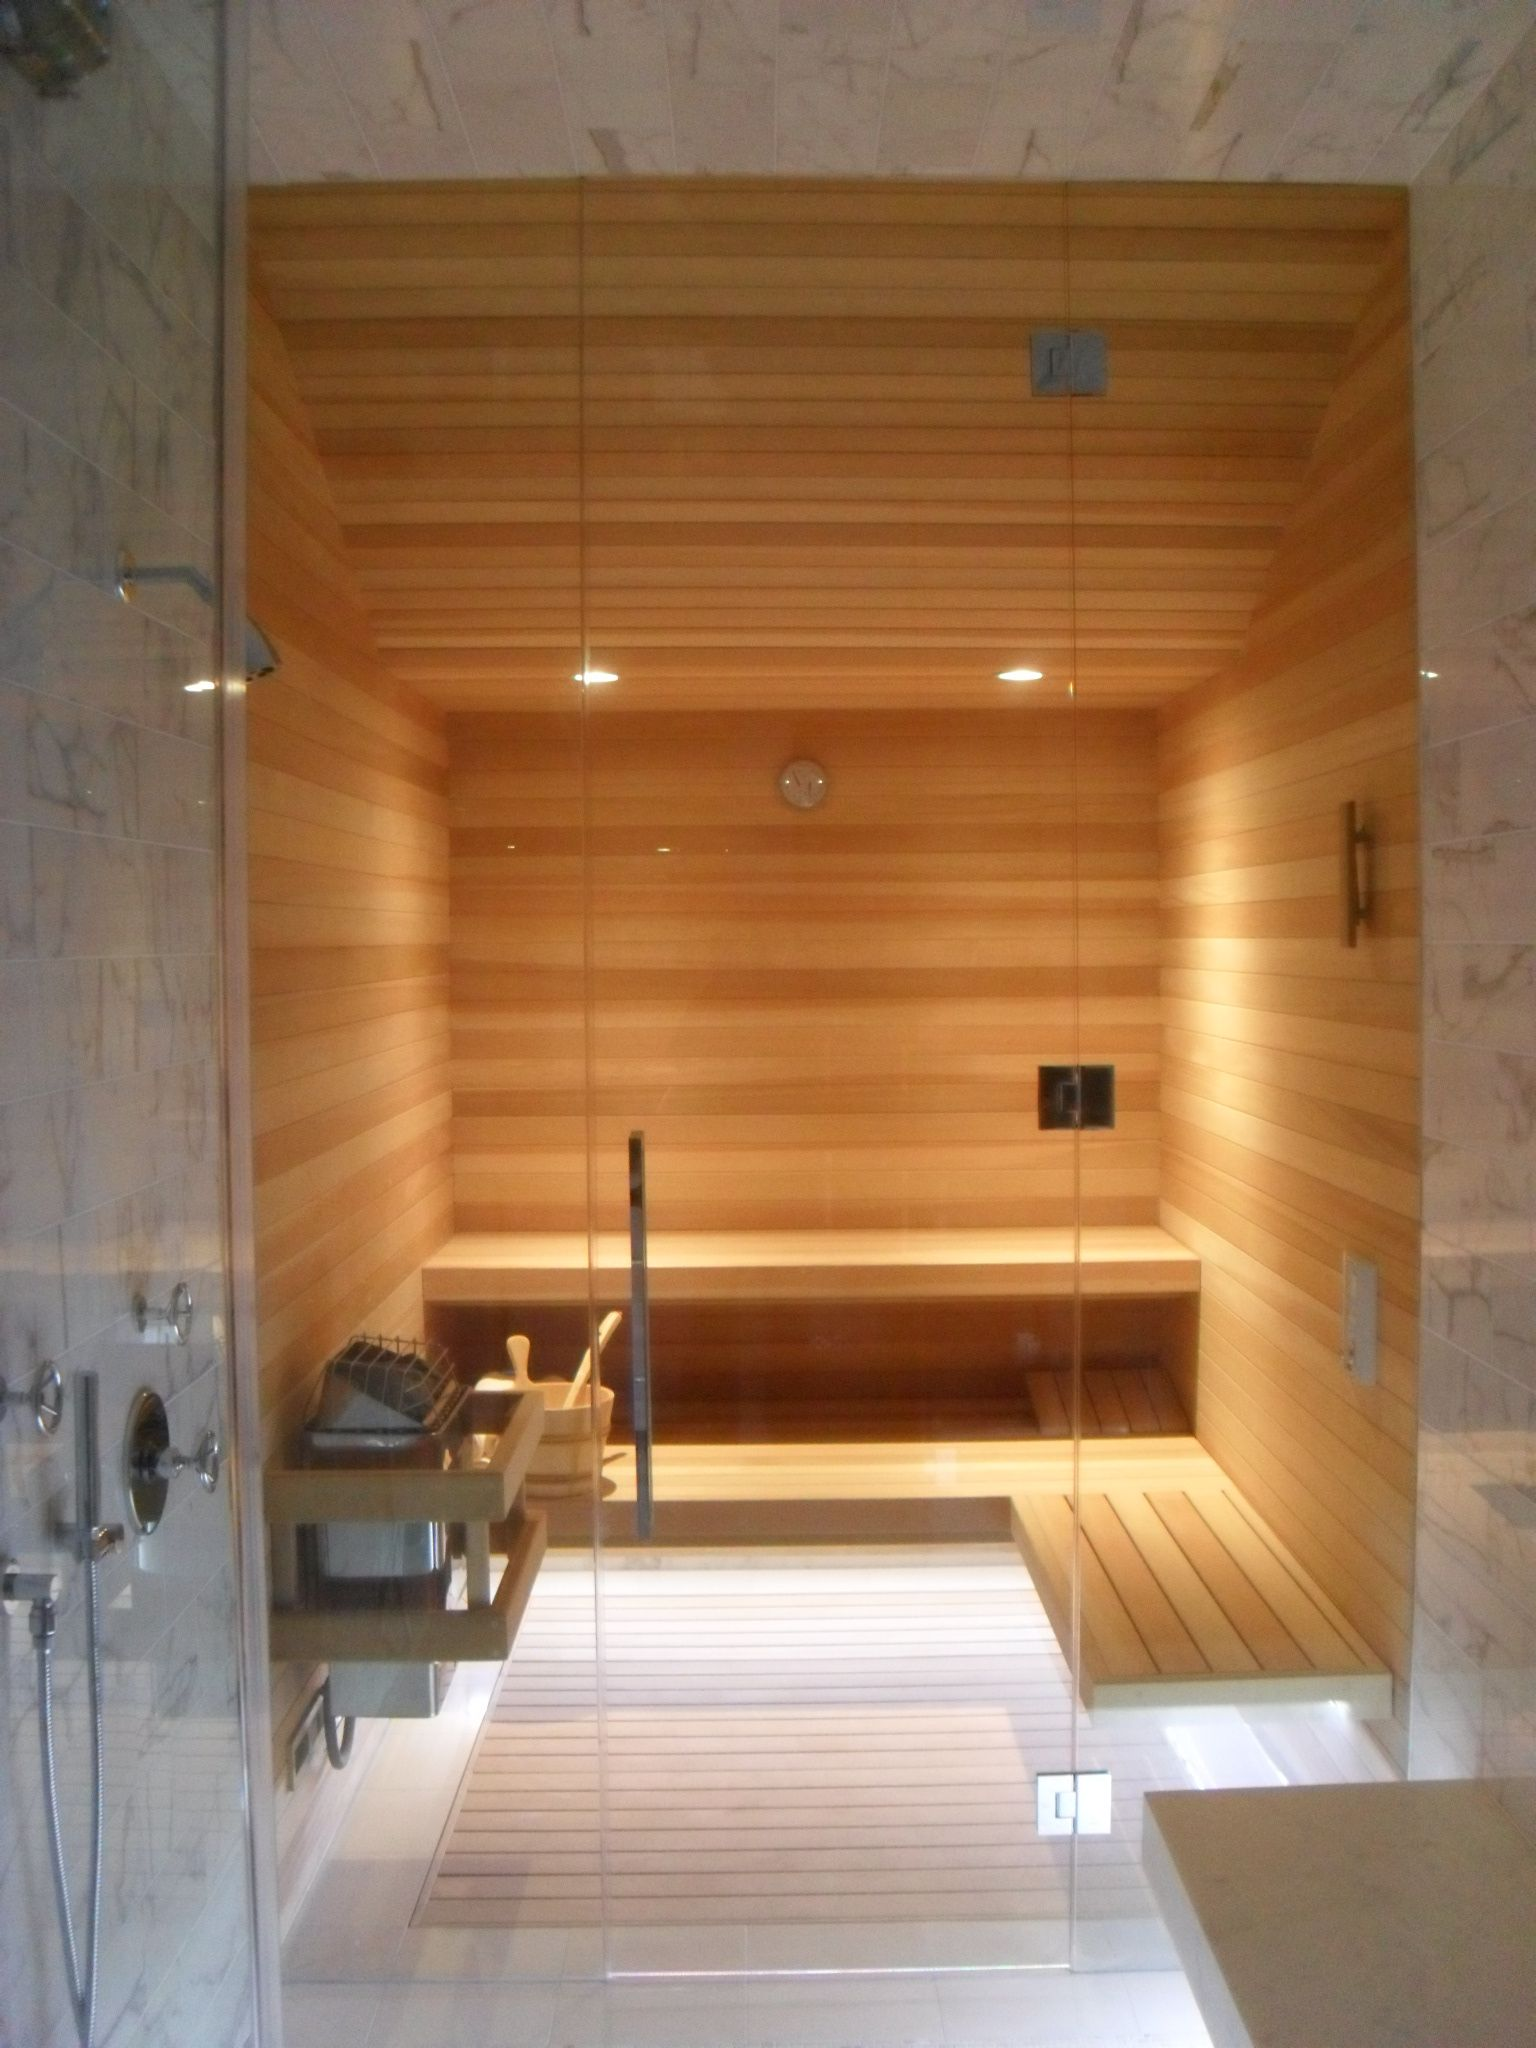 Sauna In The Home 17 Outstanding Ideas That Everyone Need: FAS Built Glass Wall Sauna With View Through Steam Room